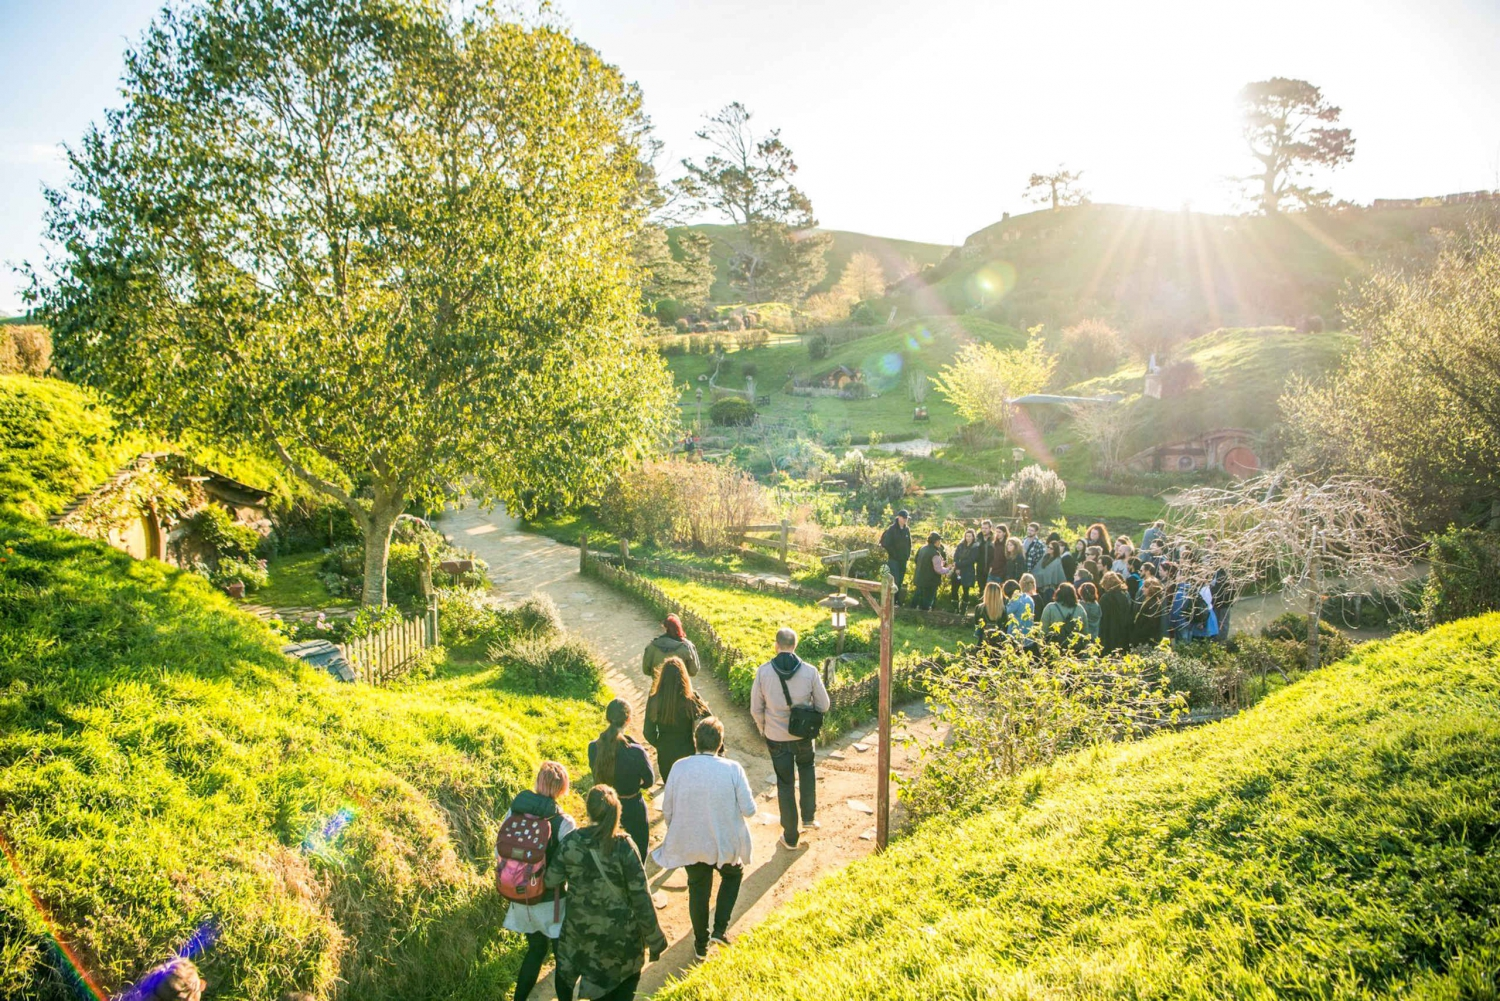 Hobbiton Movie Set Tour With Transport From Auckland